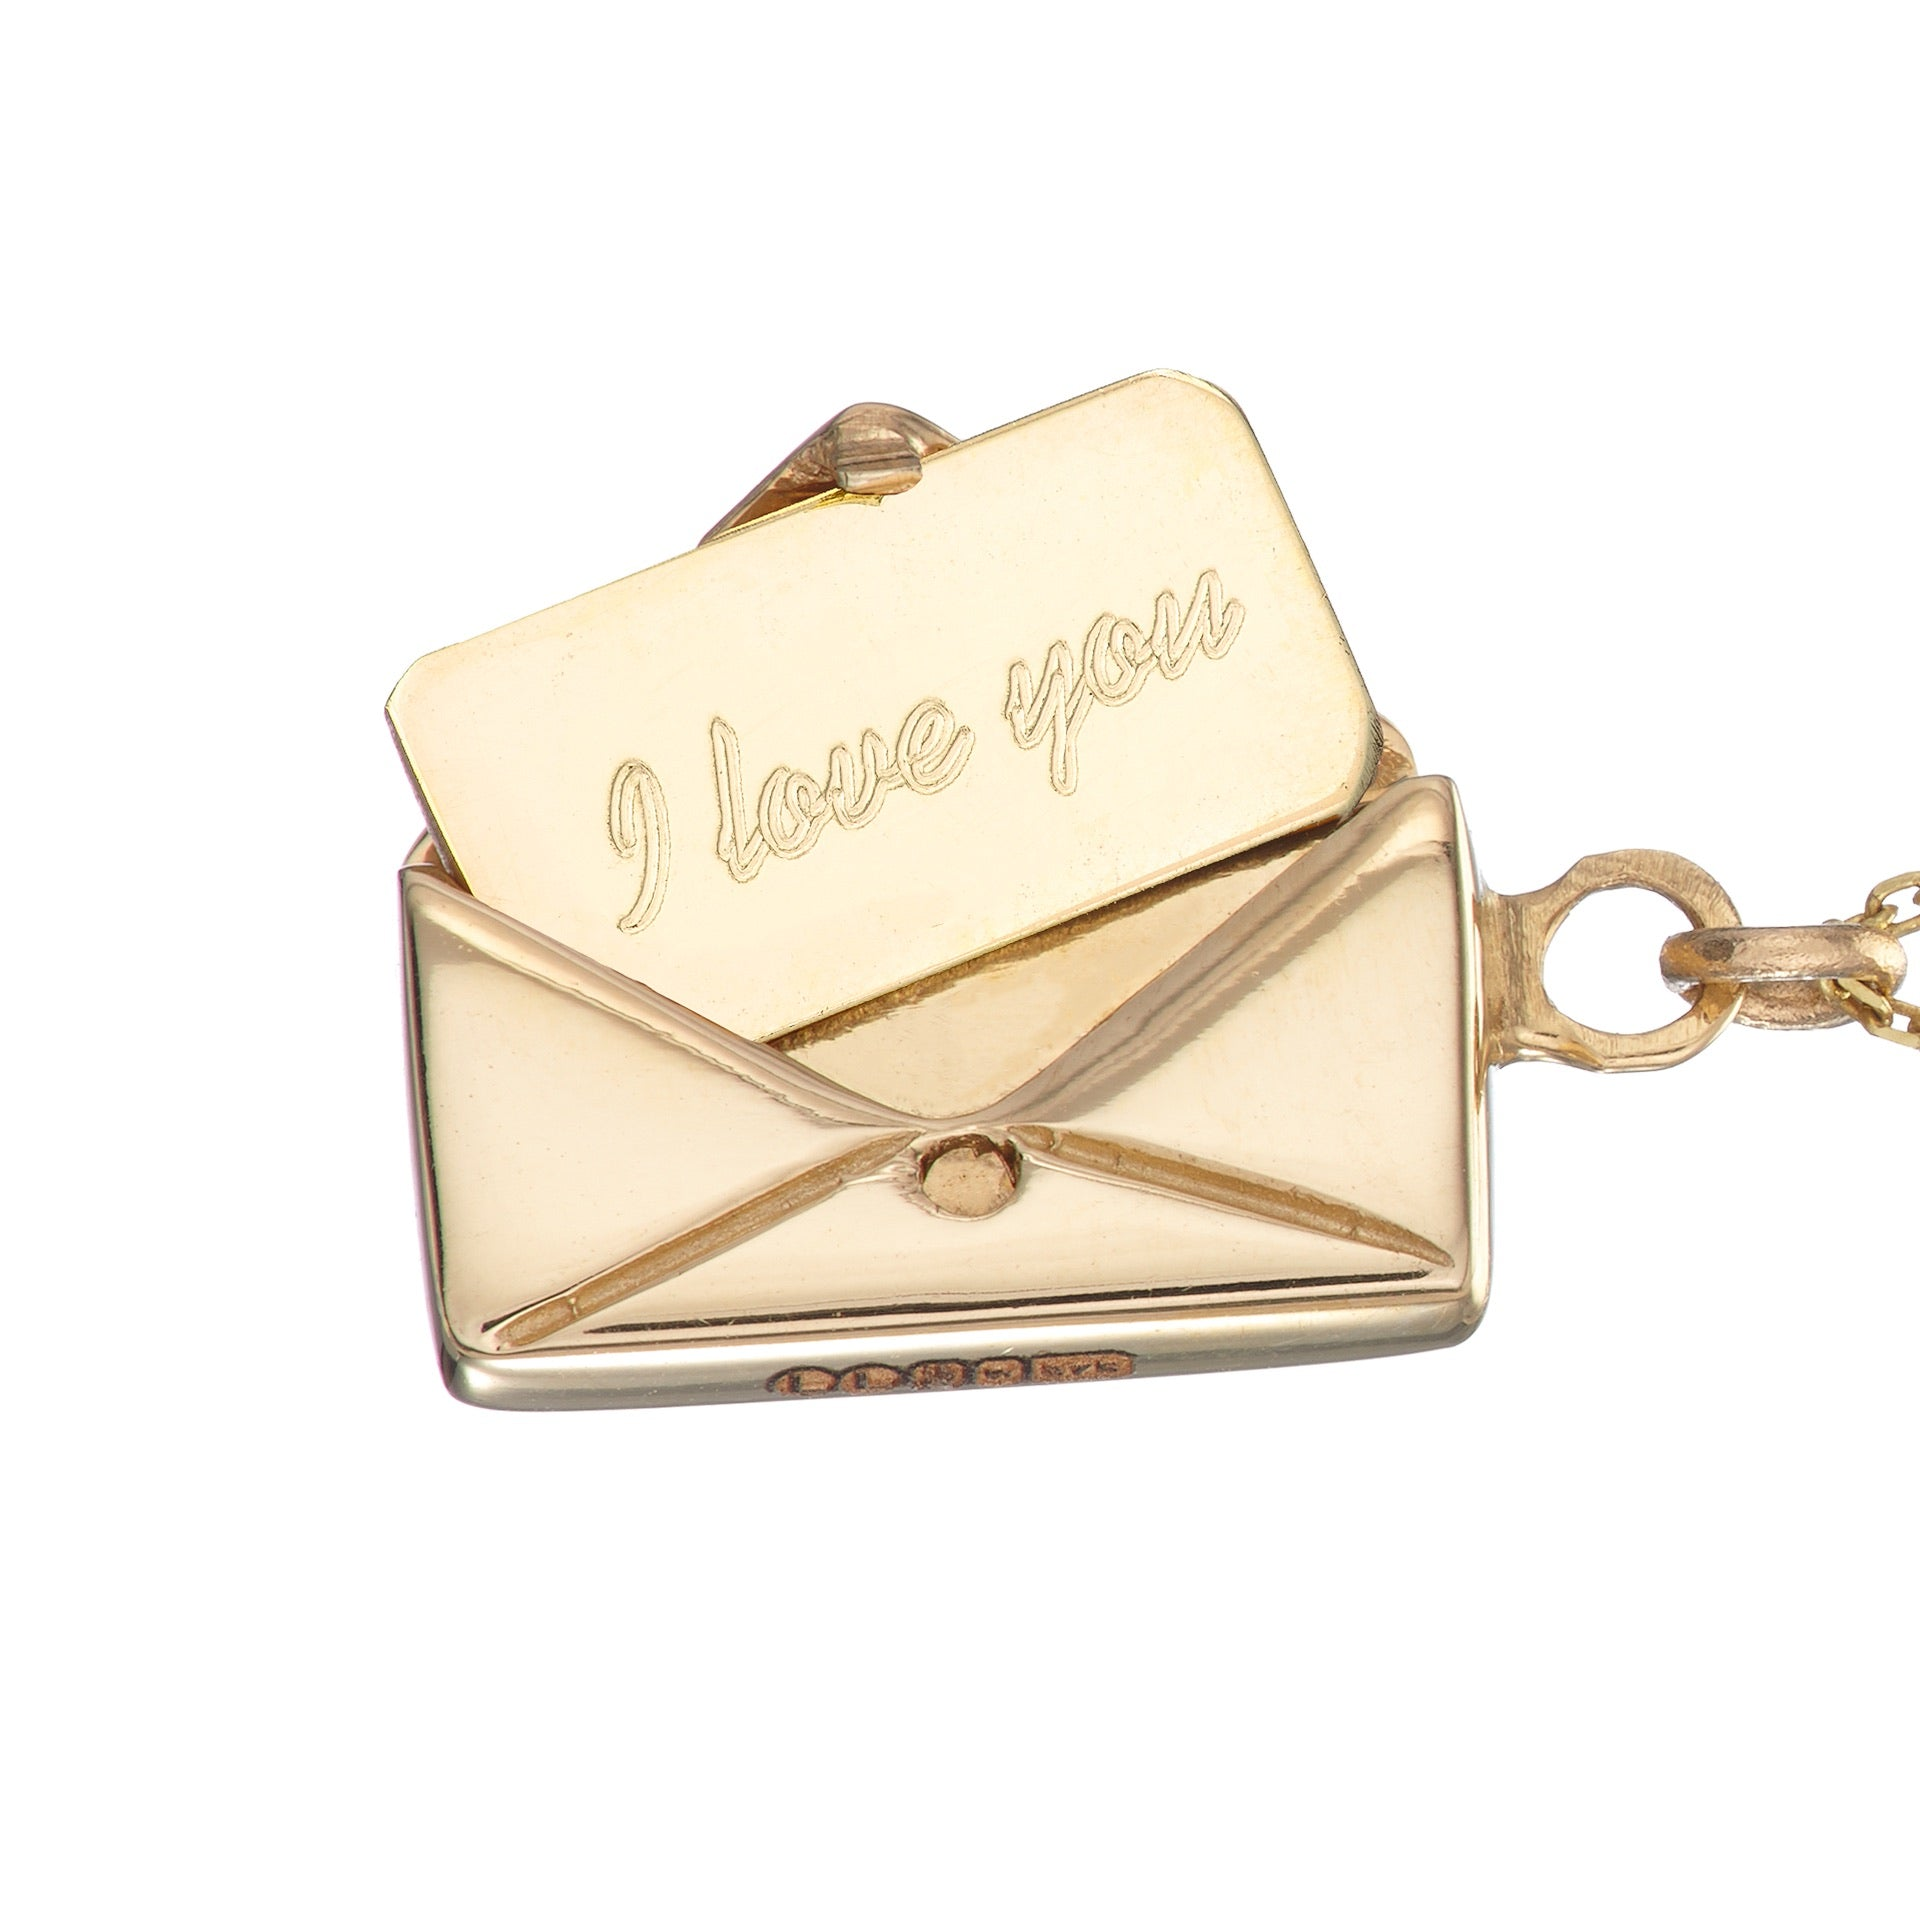 18ct Gold 'I love you' Signature Envelope Necklace